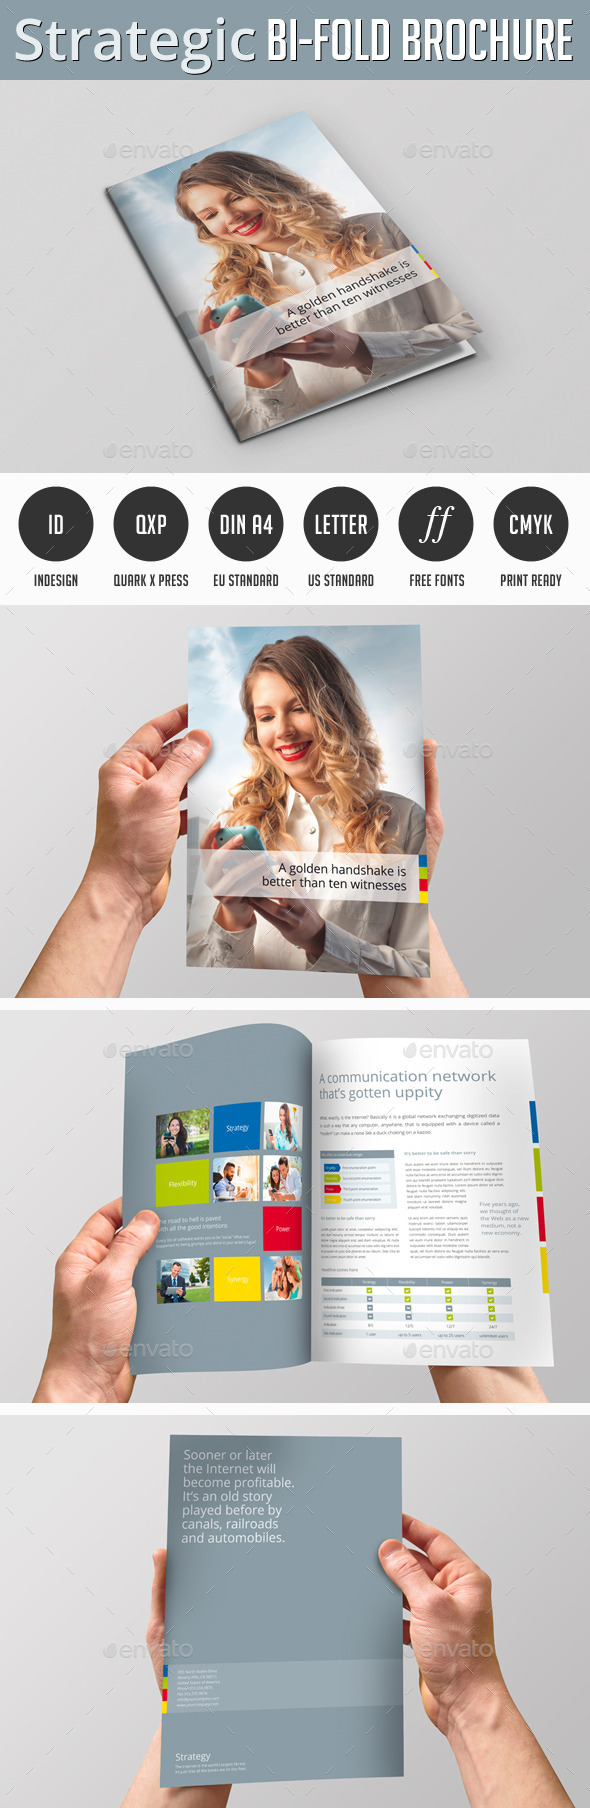 Strategic Bi-Fold Brochure - Corporate Brochures